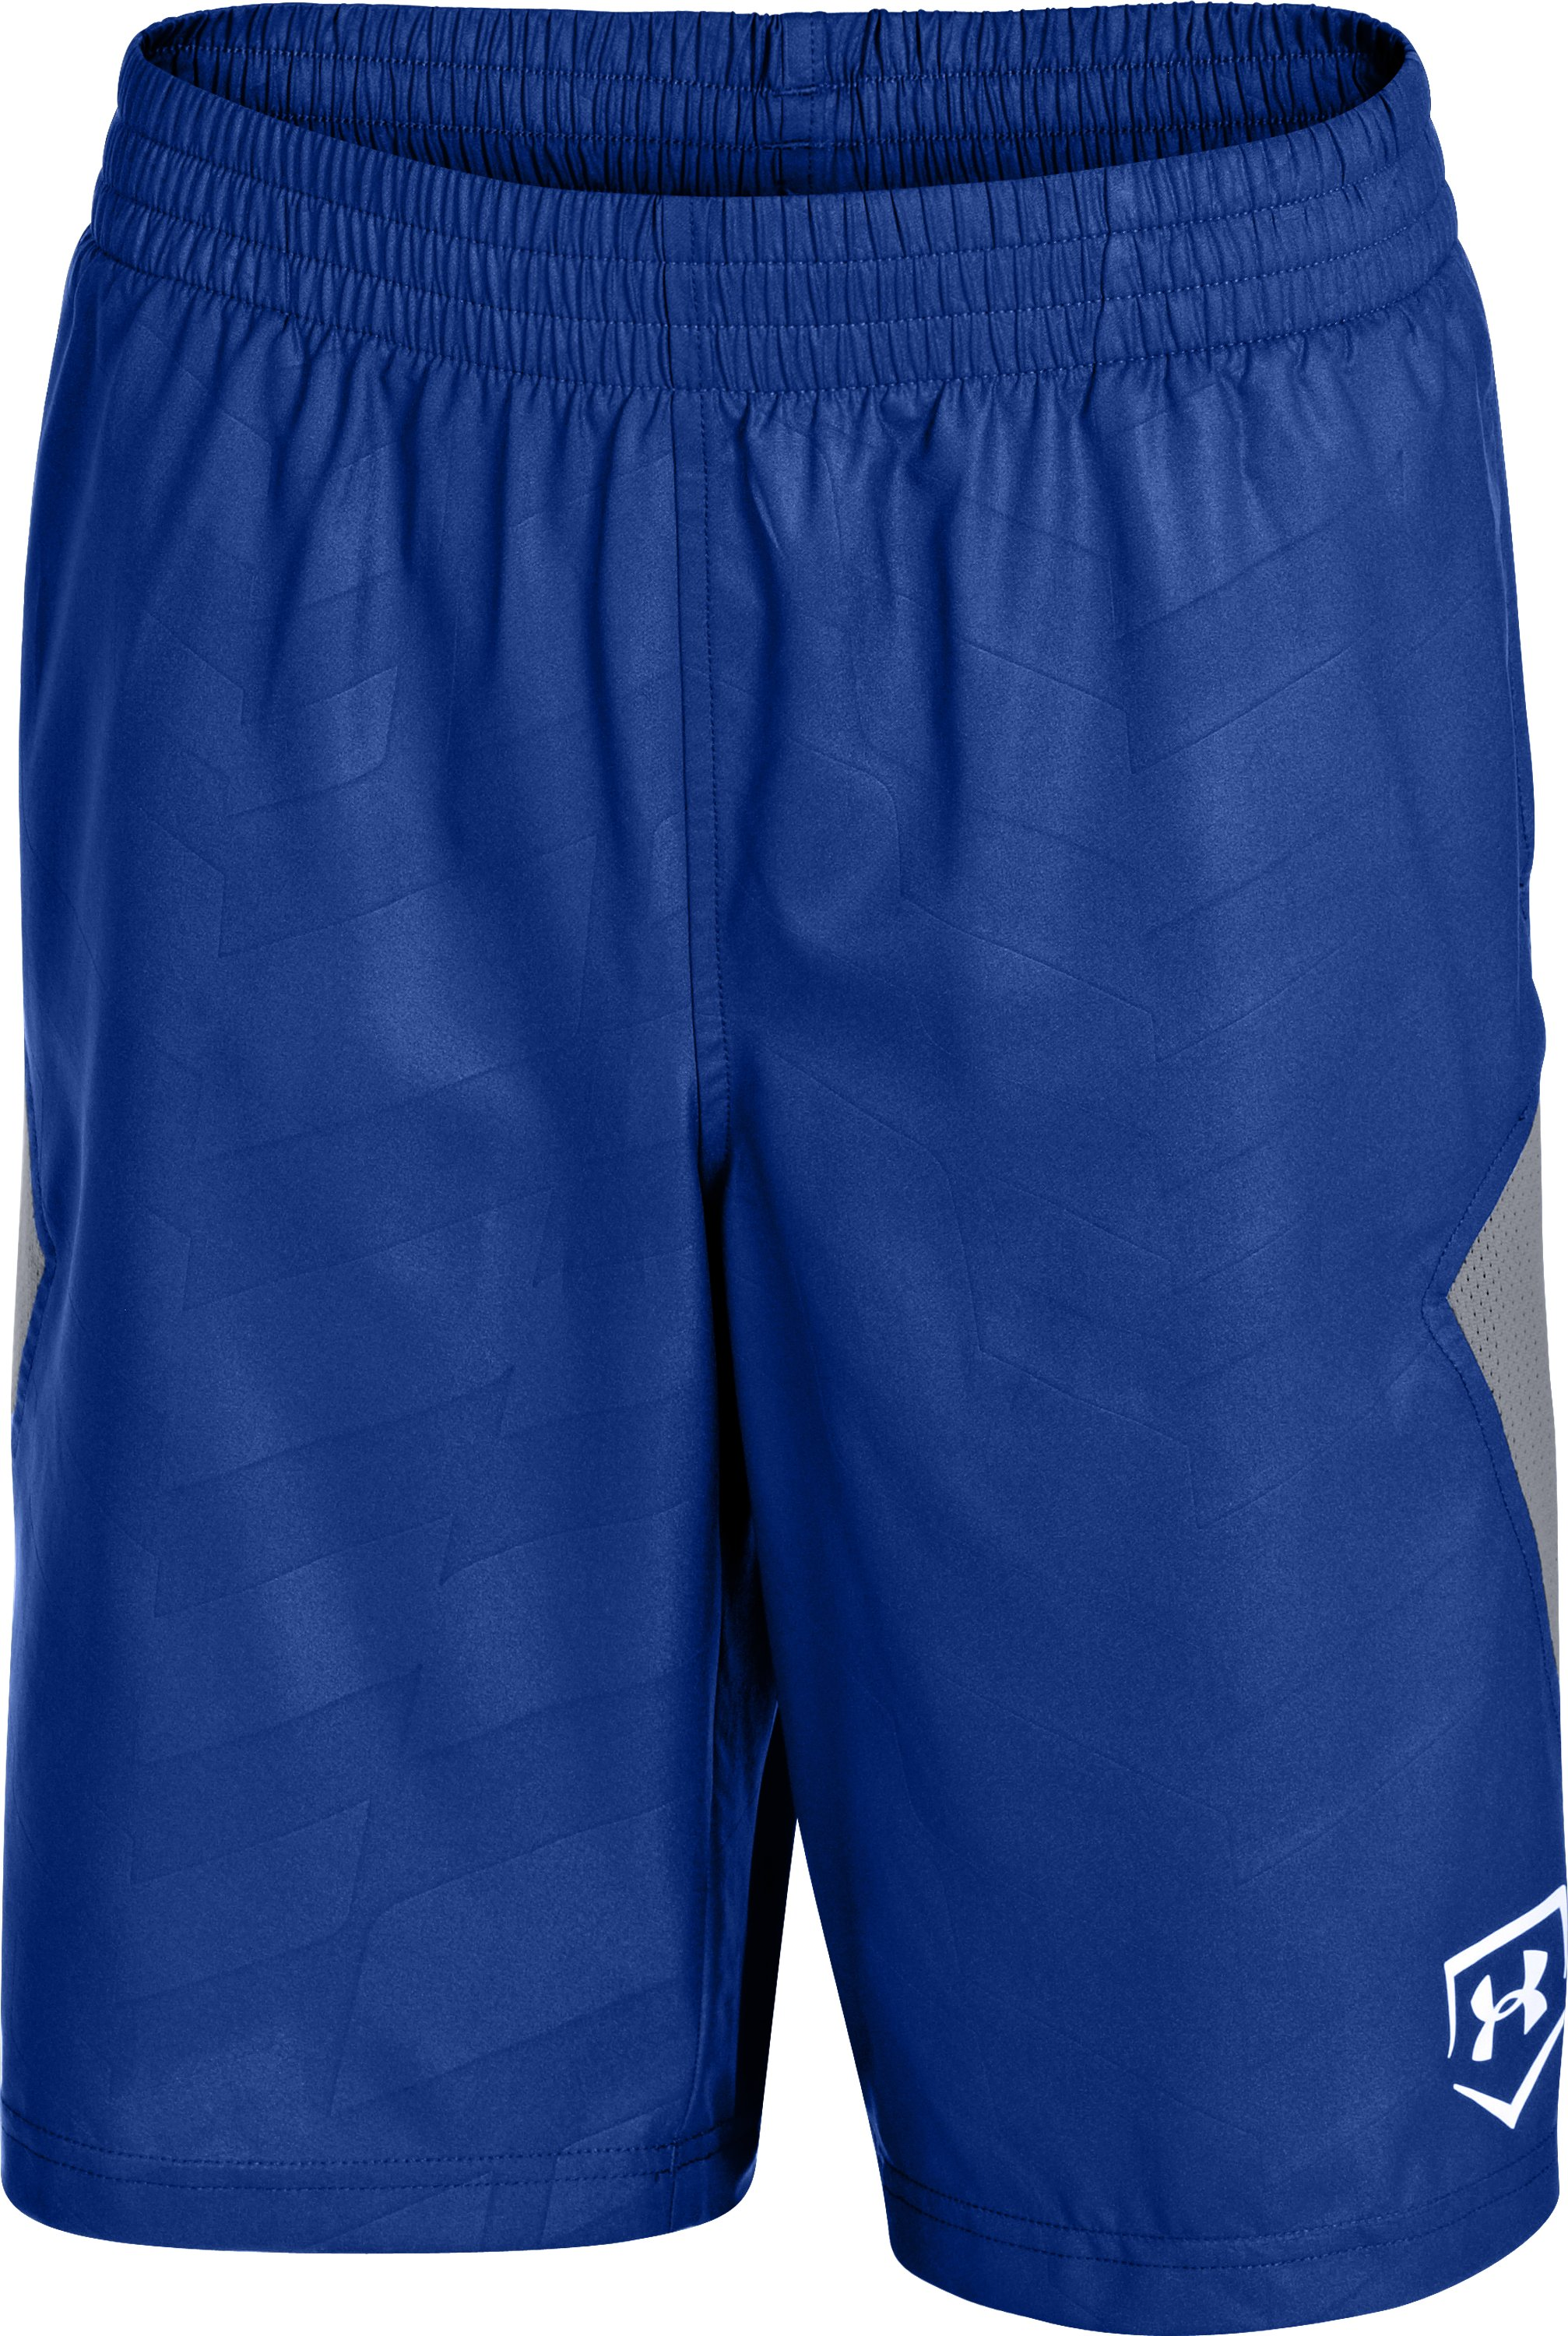 Boys' UA CTG Baseball Training Shorts, Royal, zoomed image